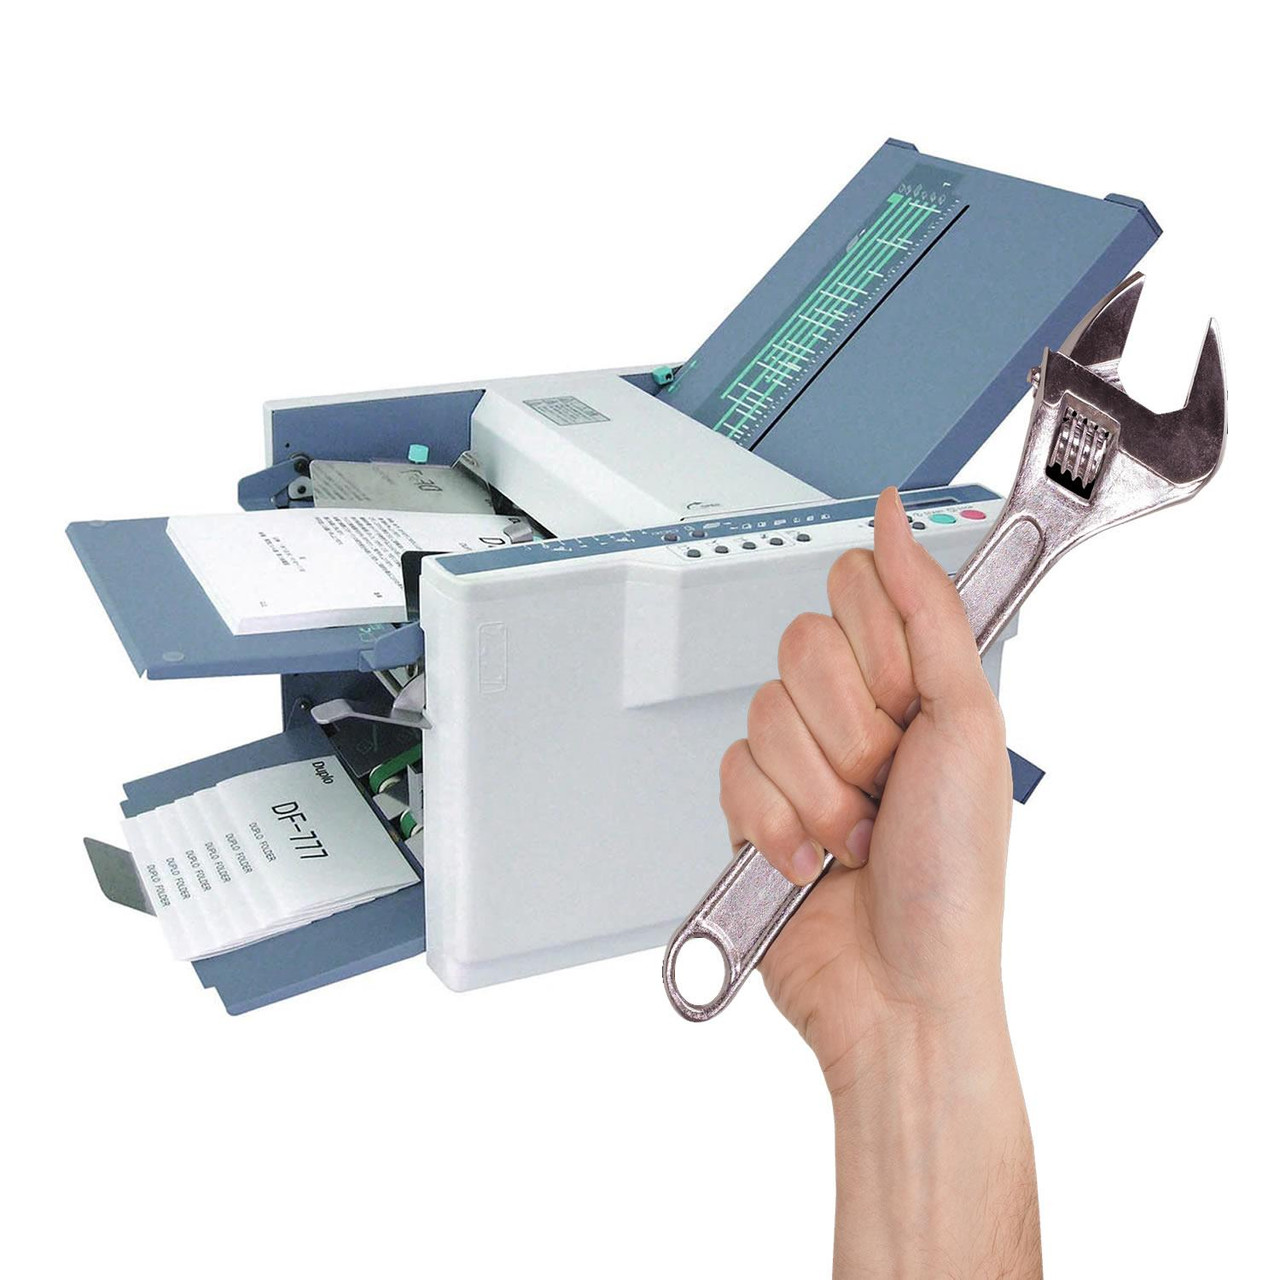 Back to Base Service / Repair for A3 Paper Folding Machines